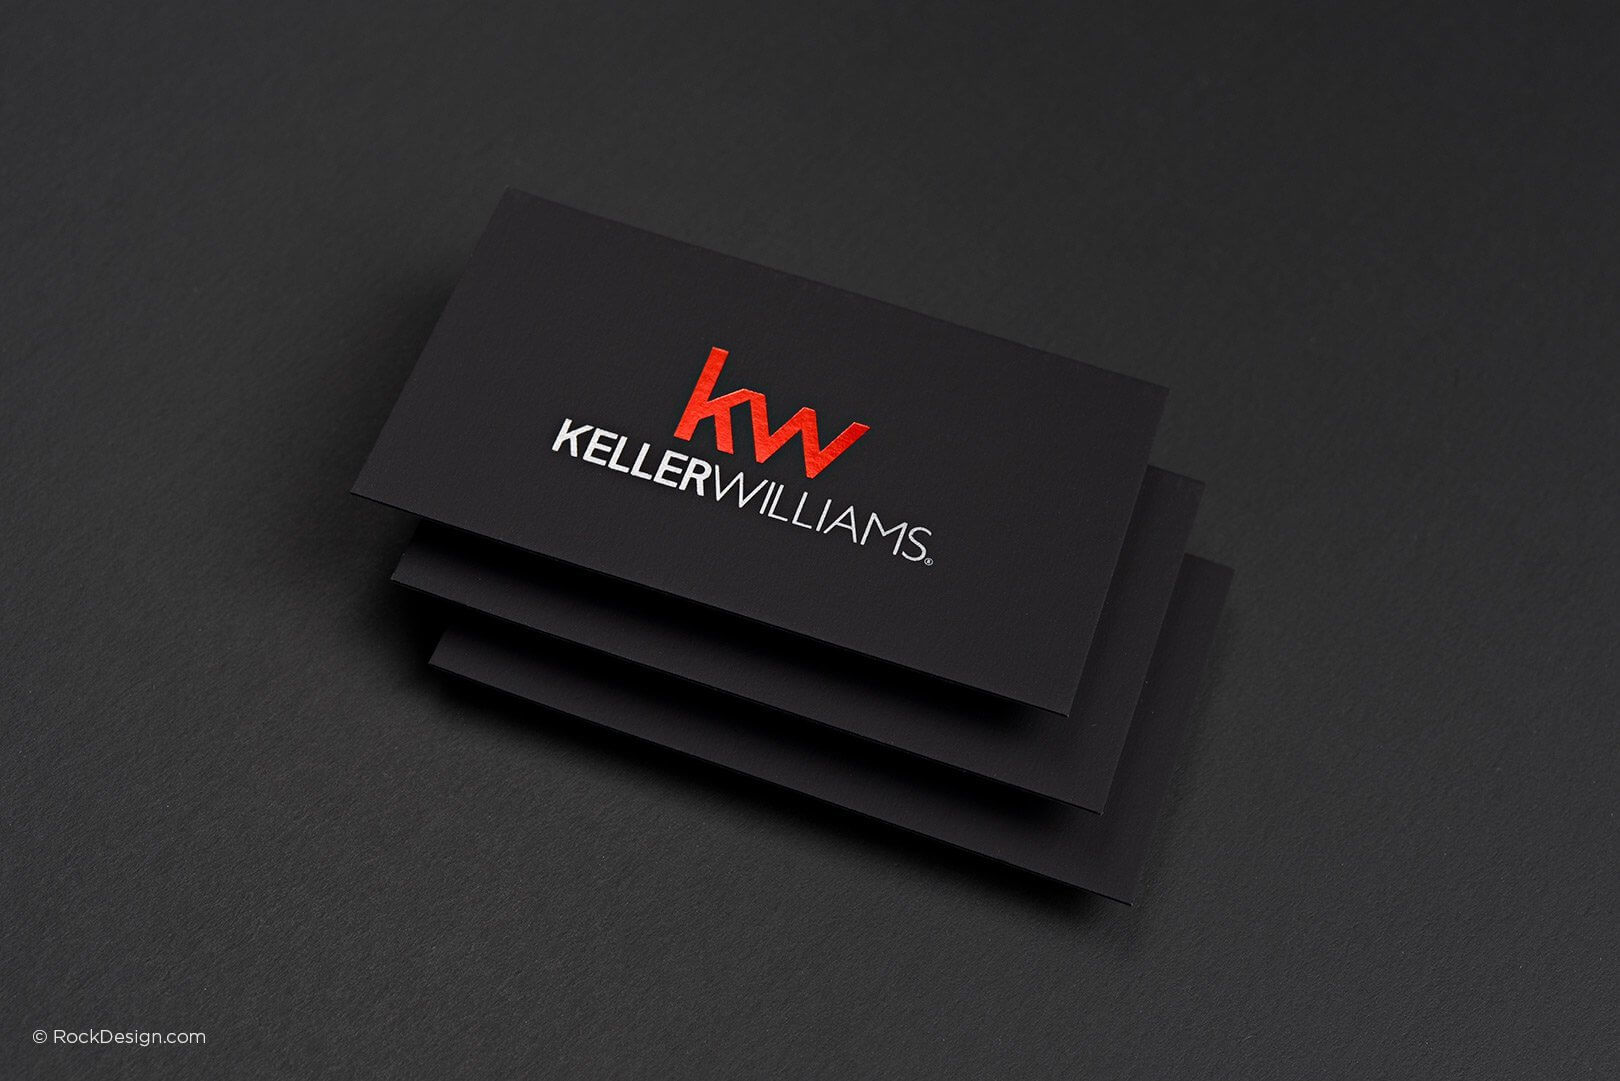 Free Keller Williams Business Card Template With Print within Real Estate Business Cards Templates Free